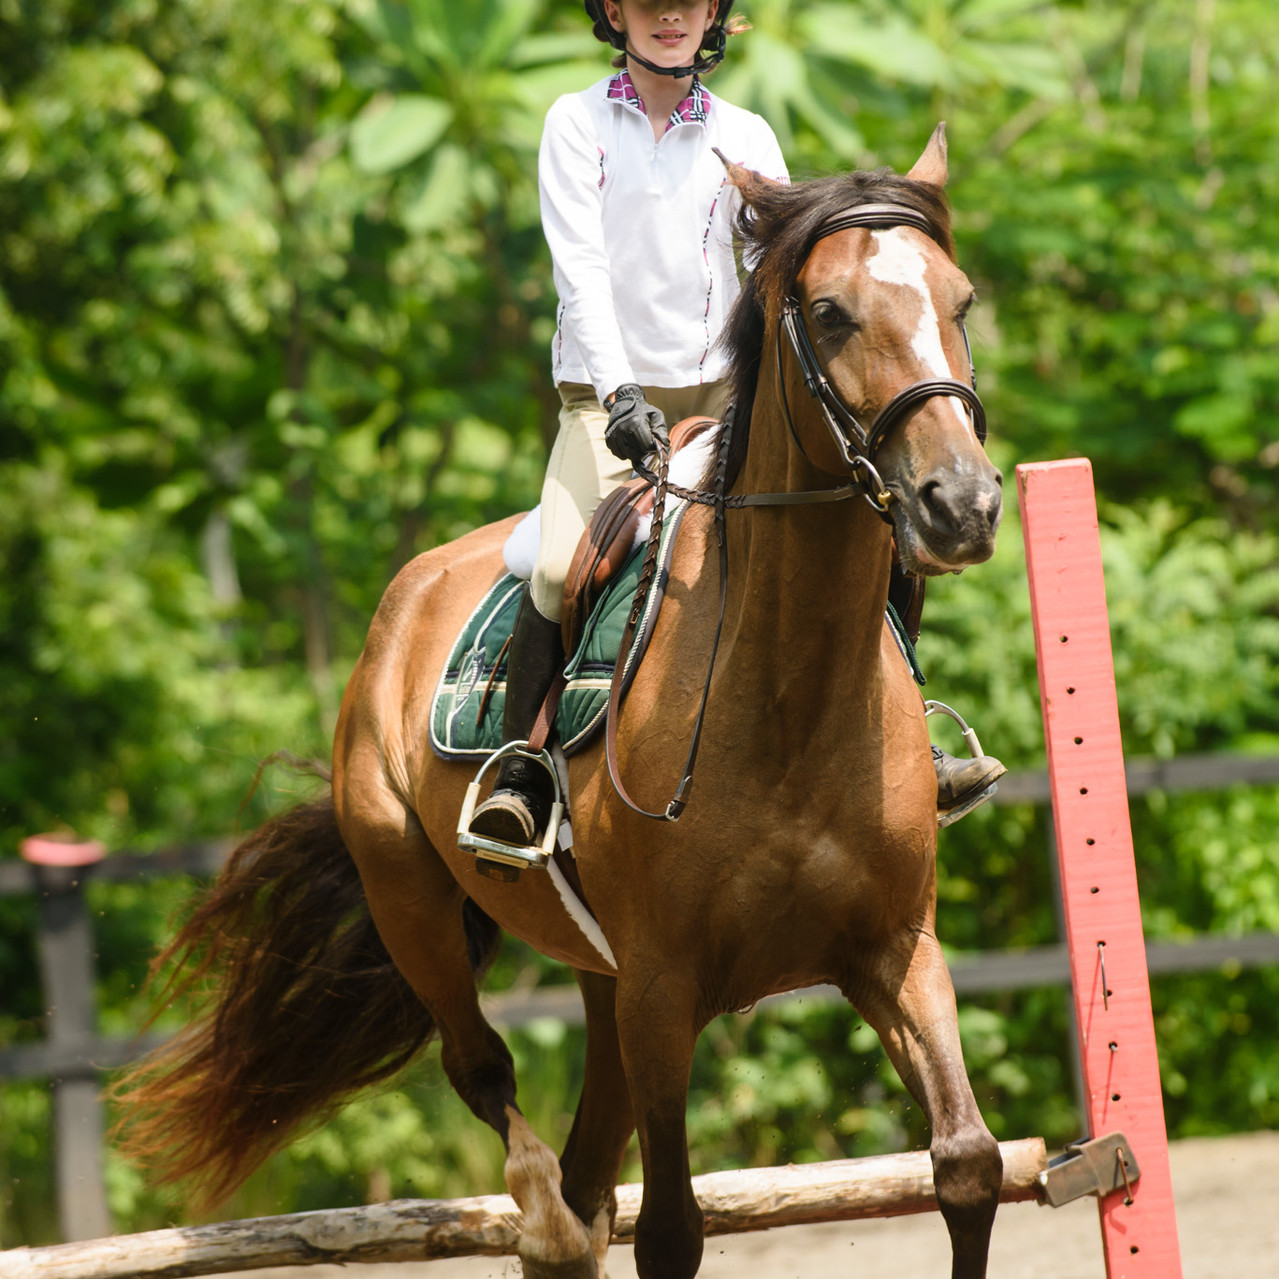 Riding proud at Costa Rica Equestrian Vacations